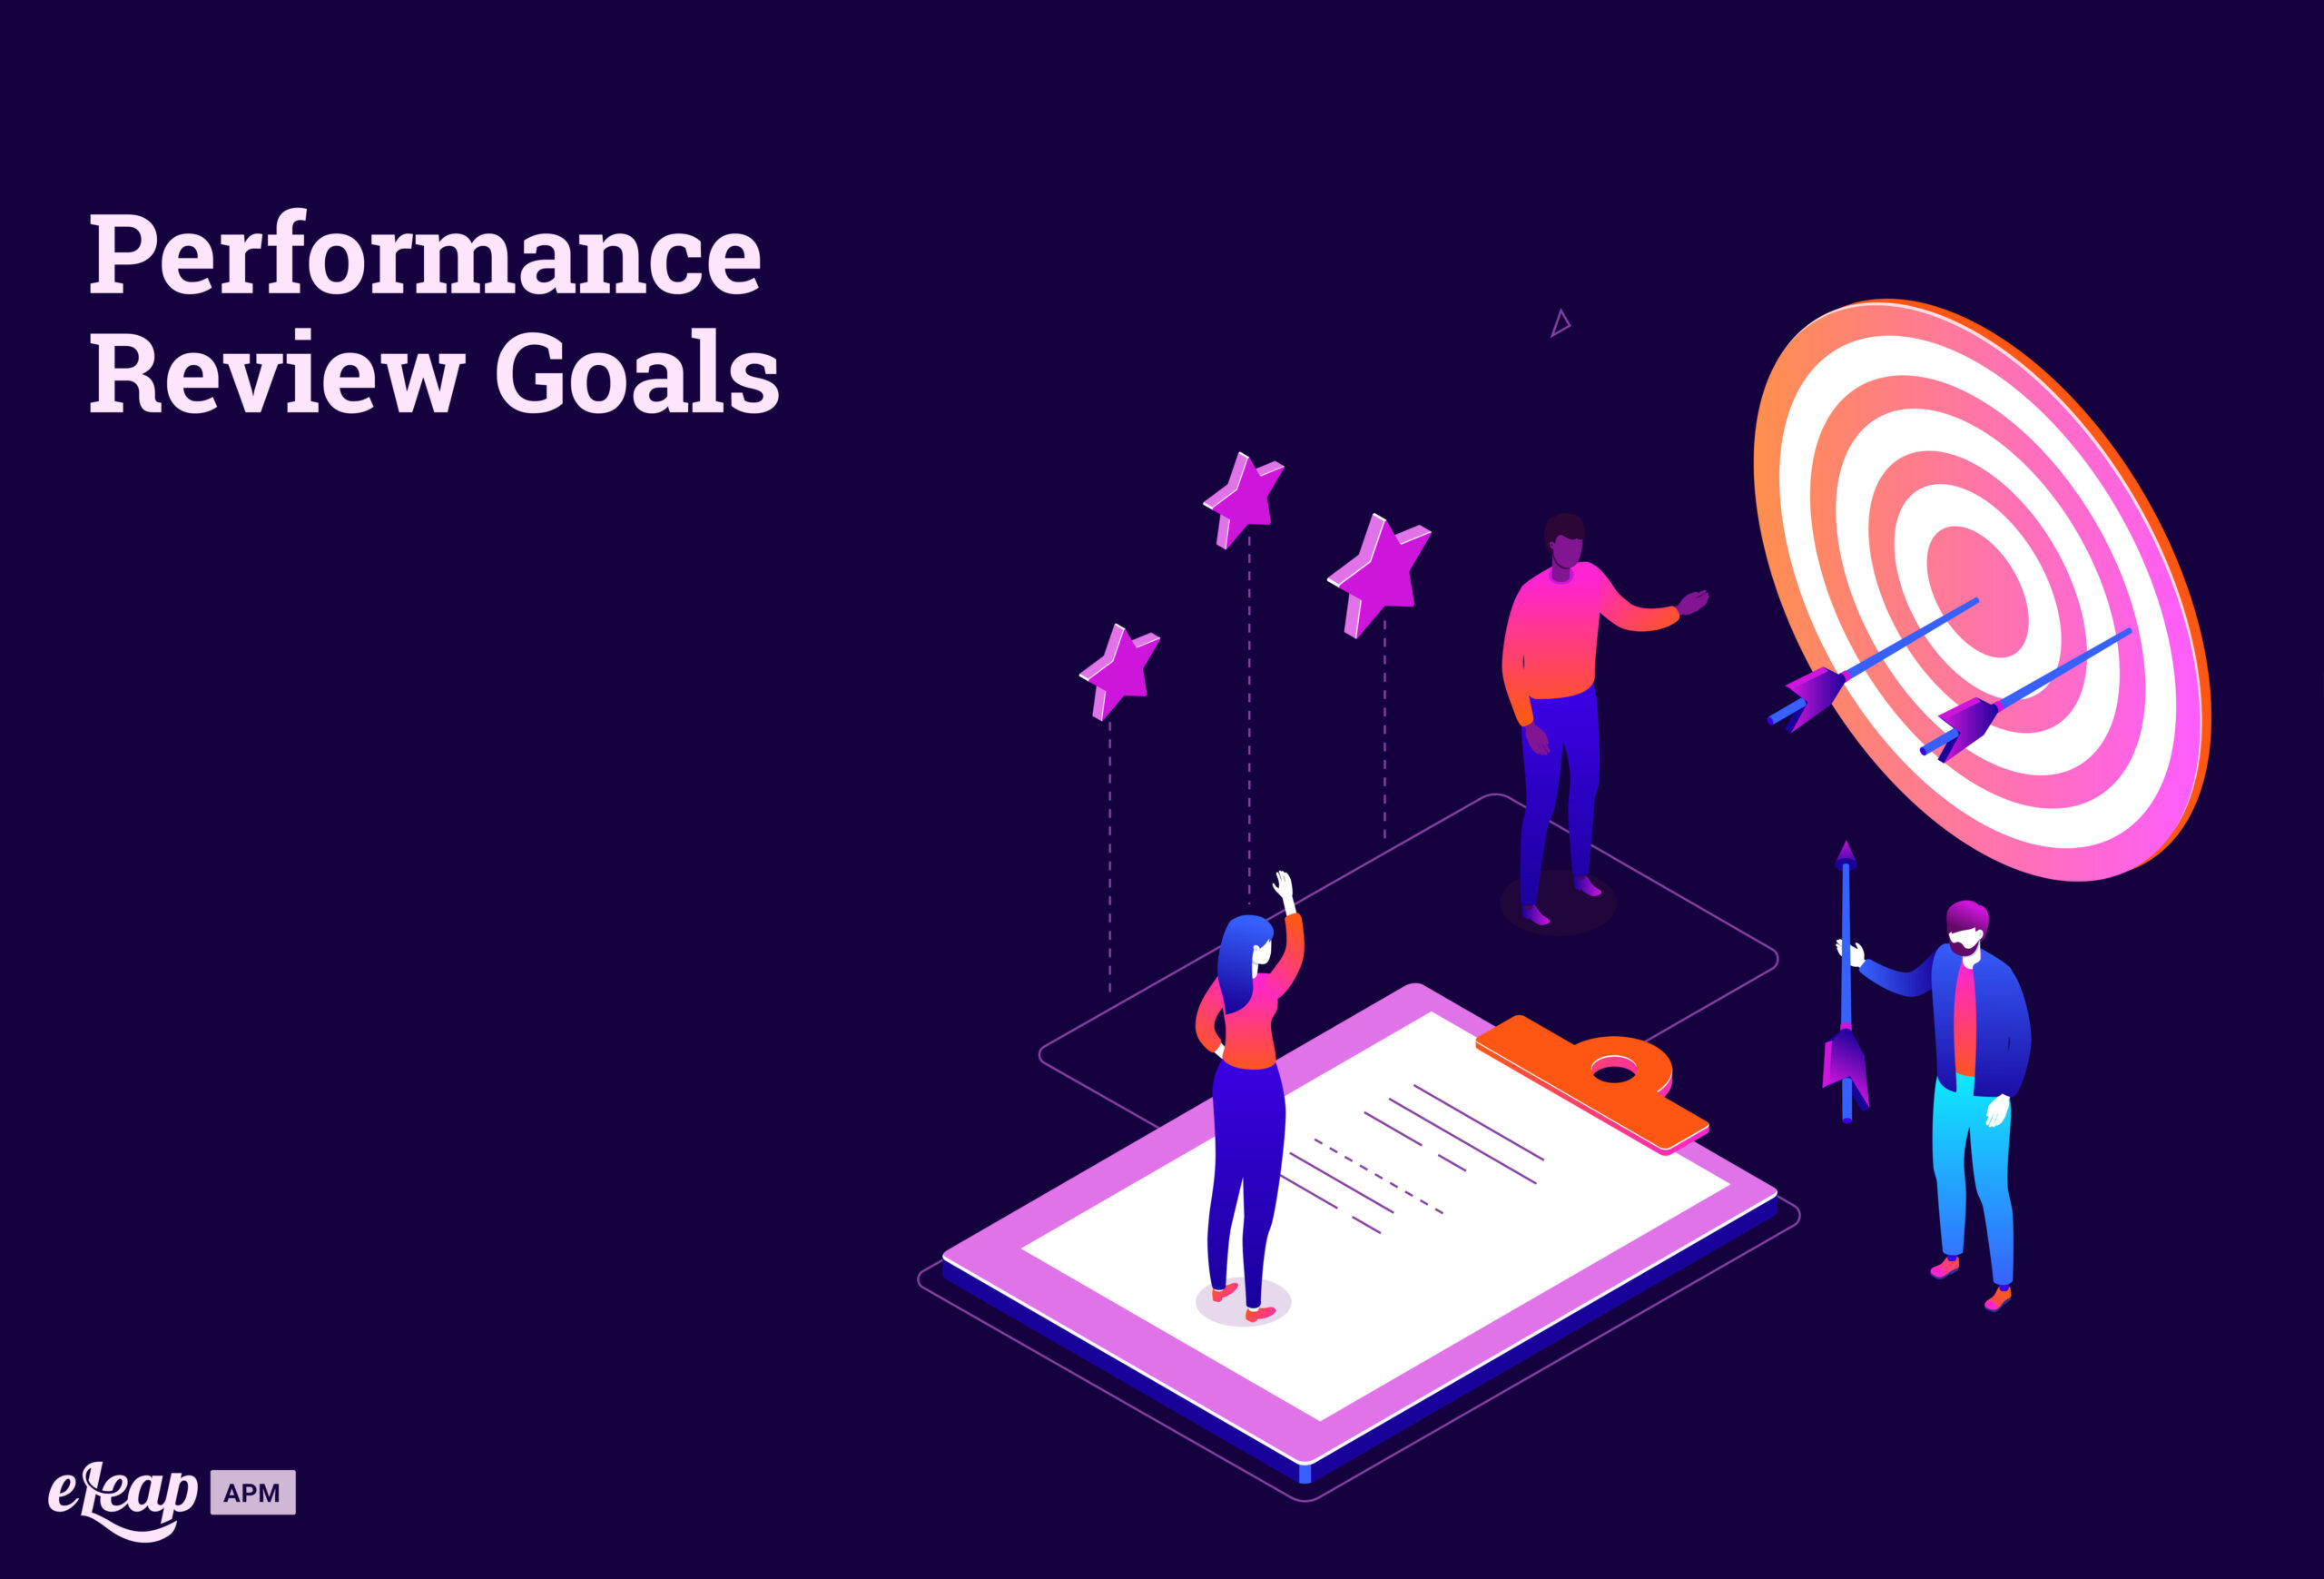 Performance Review Goals